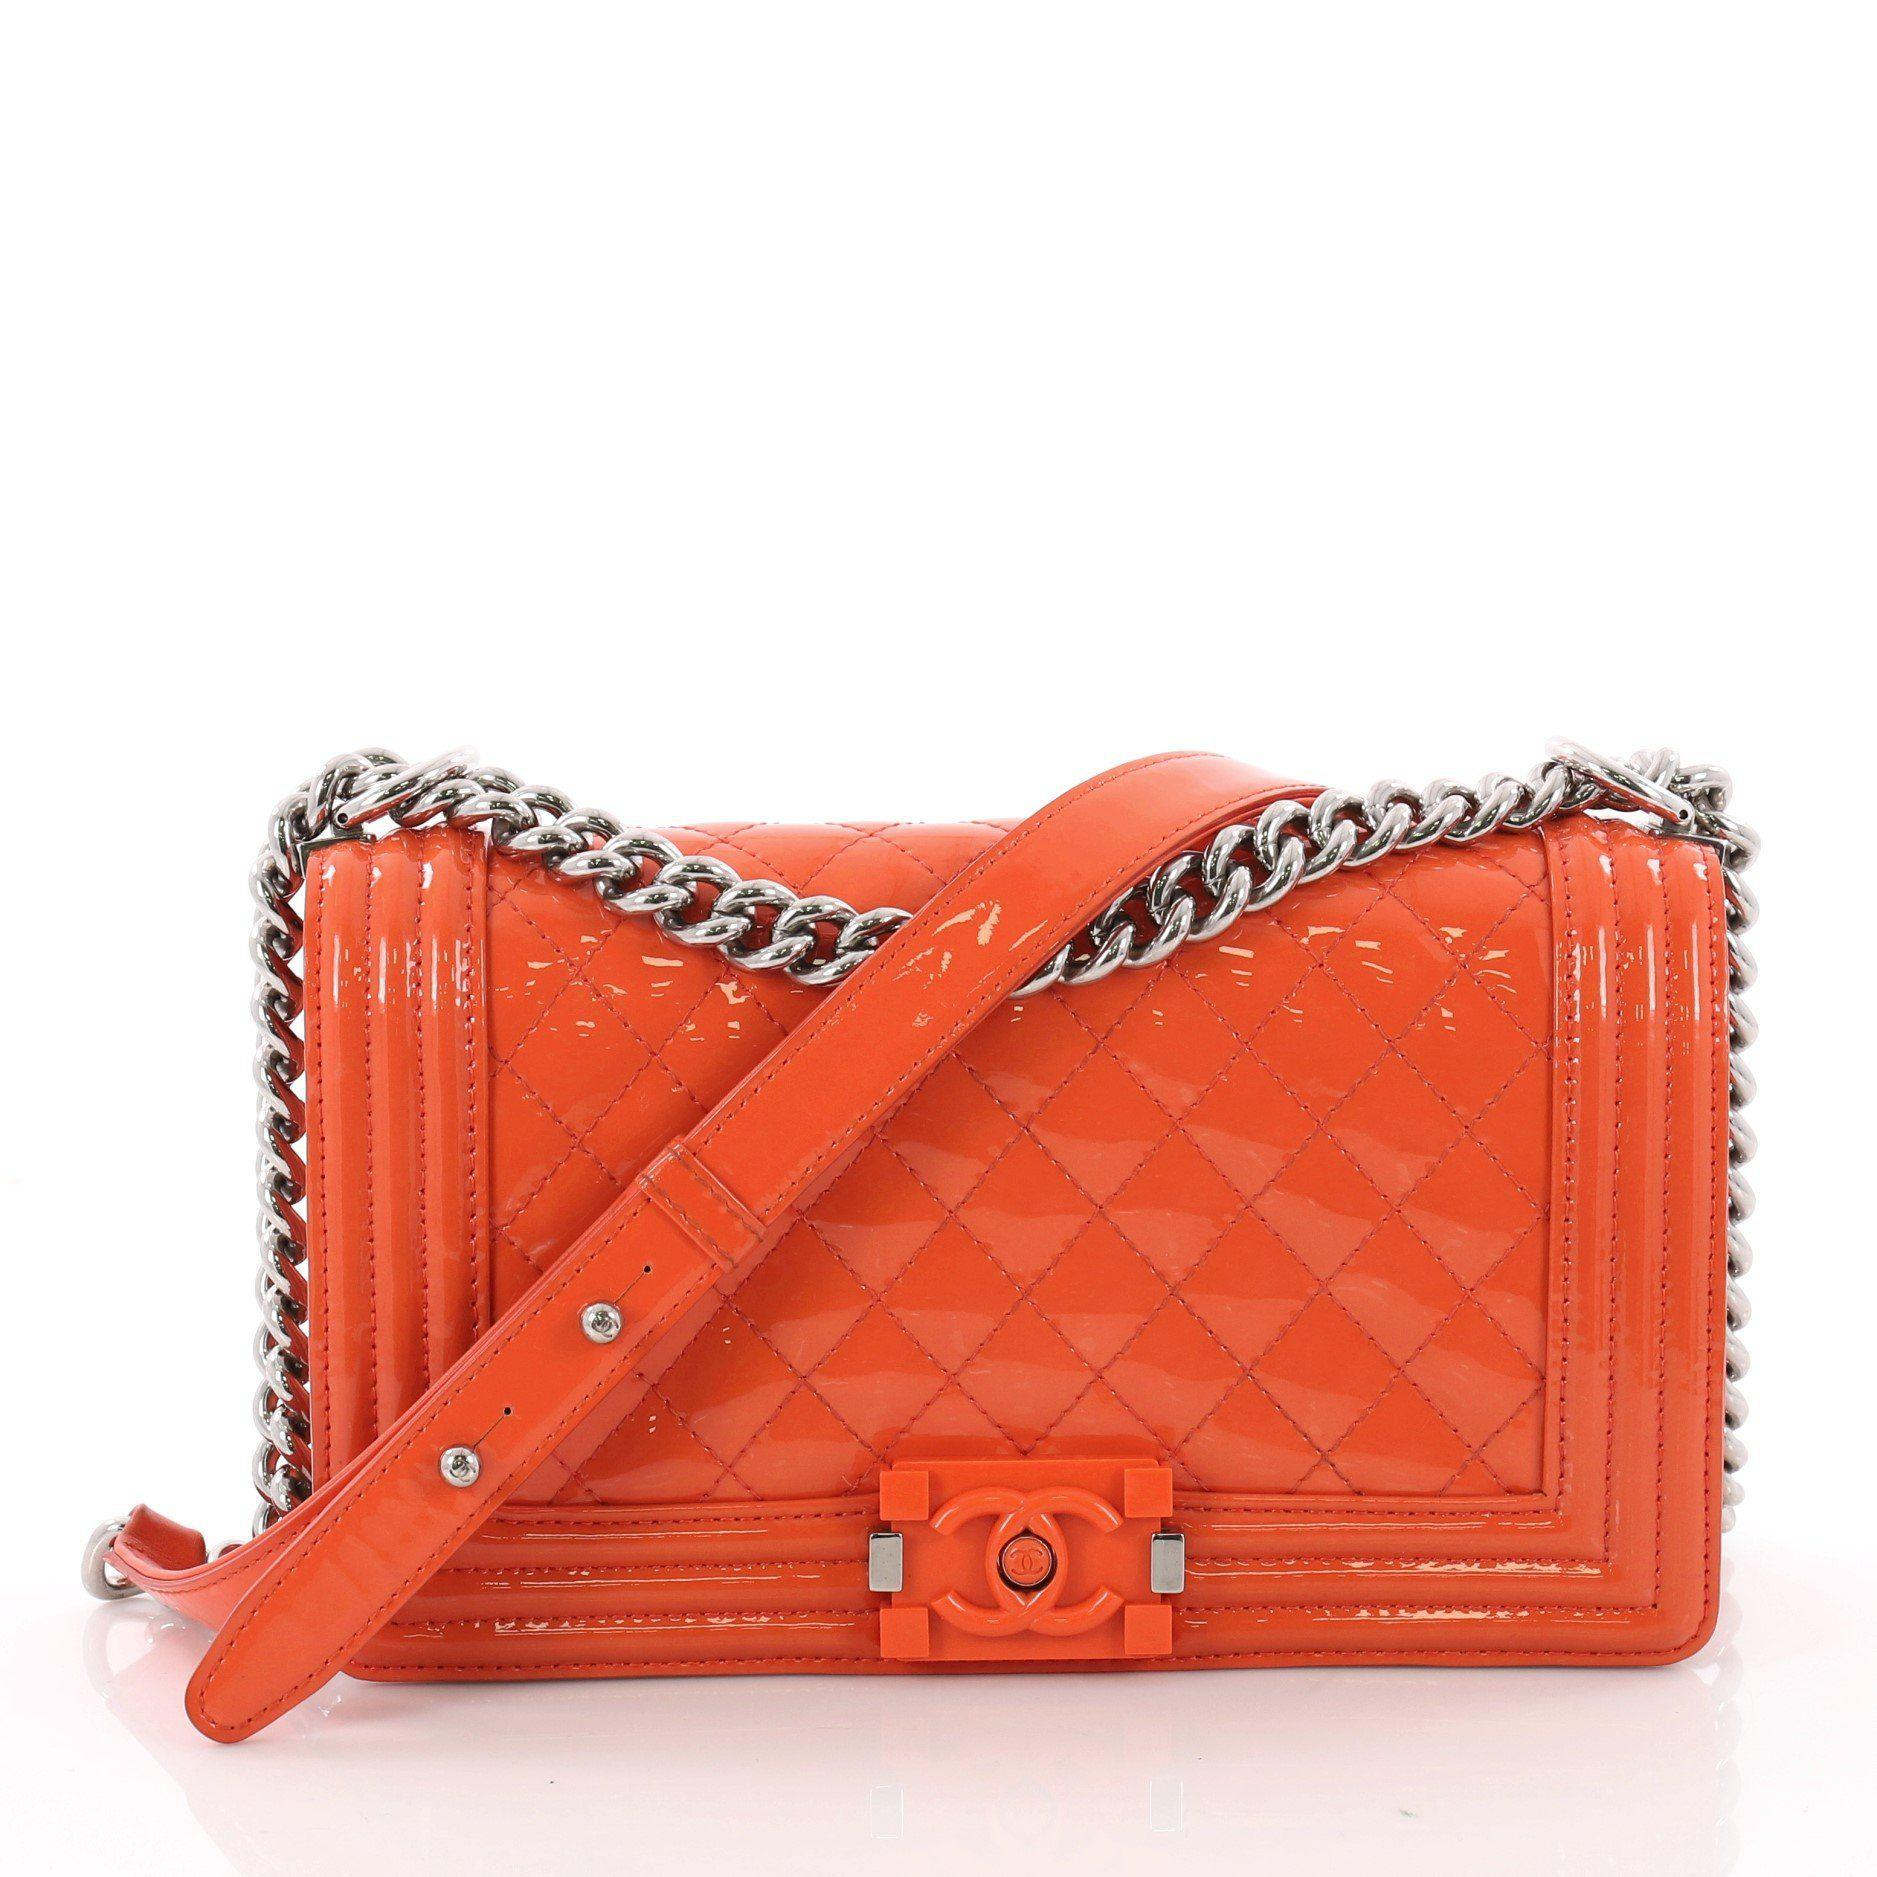 4b08c71755 Lyst - Chanel Pre Owned Boy Flap Bag Quilted Plexiglass Patent Old ...